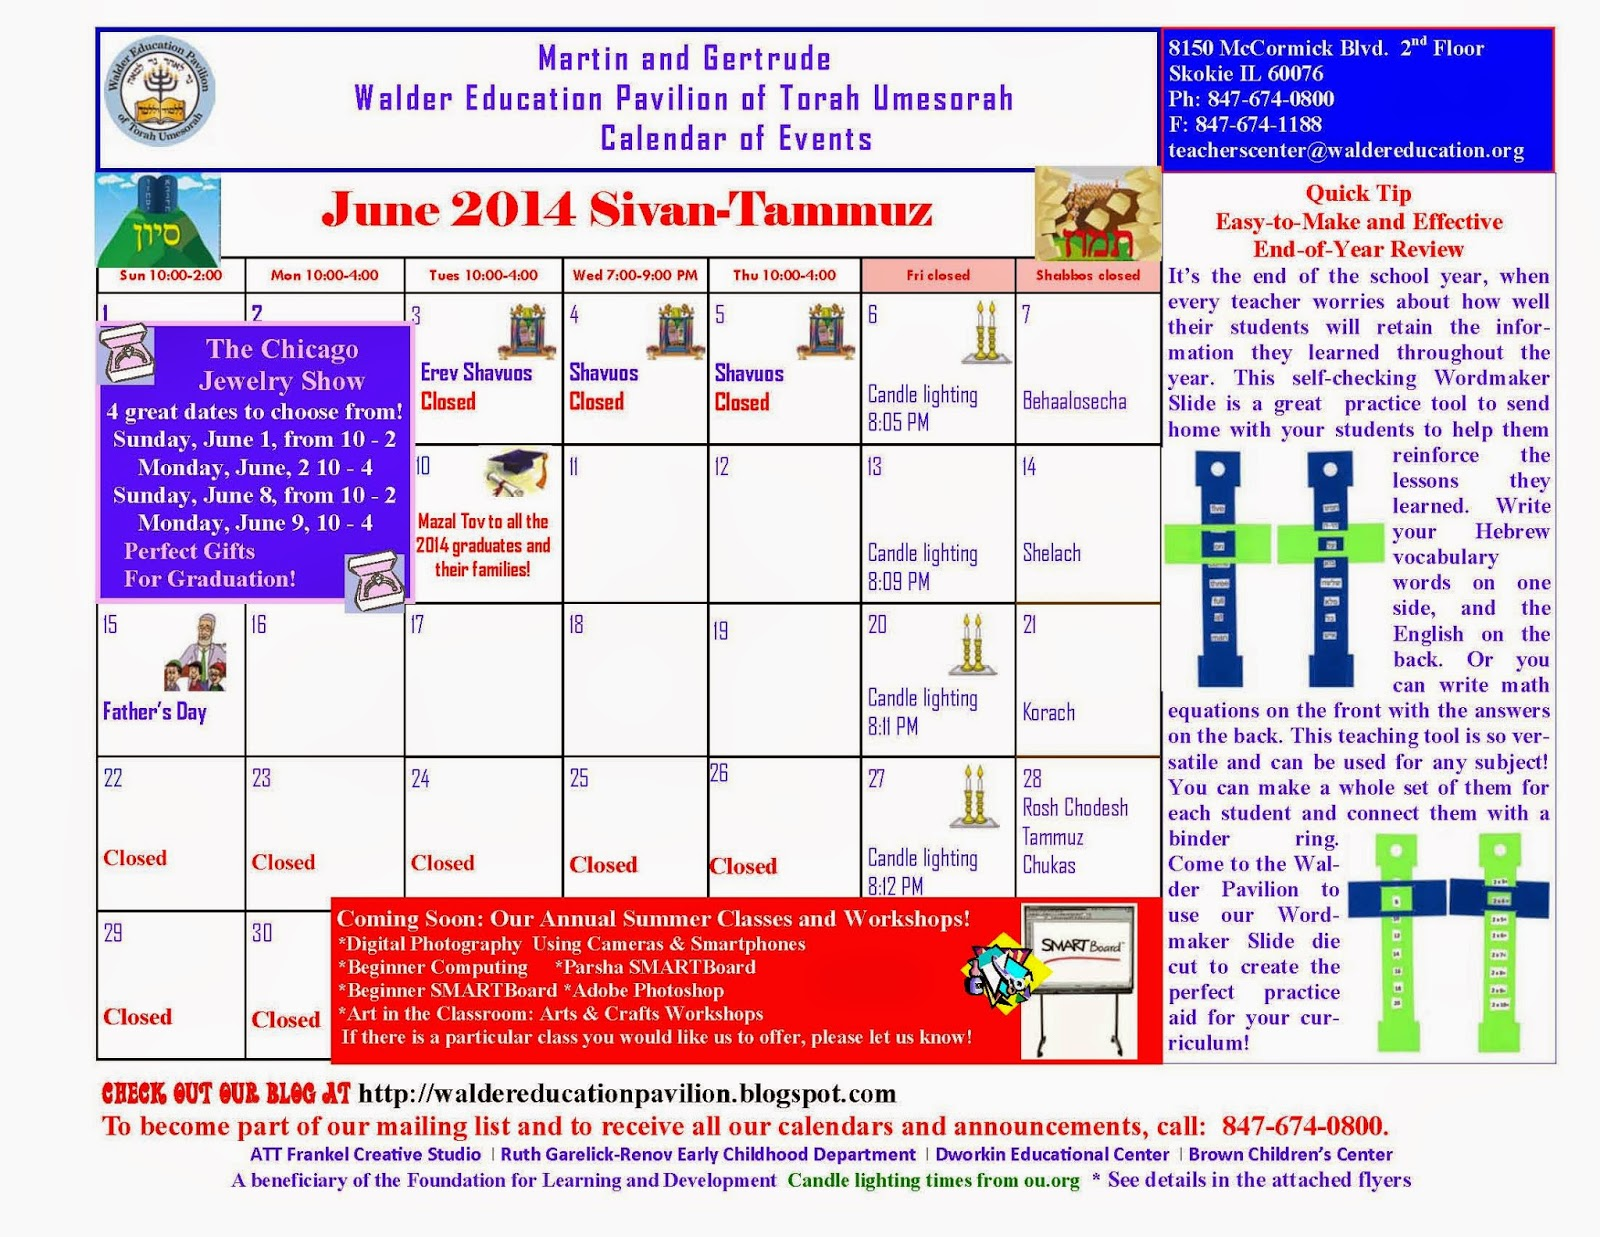 June Calendar Events : Walder education pavilion of torah umesorah june